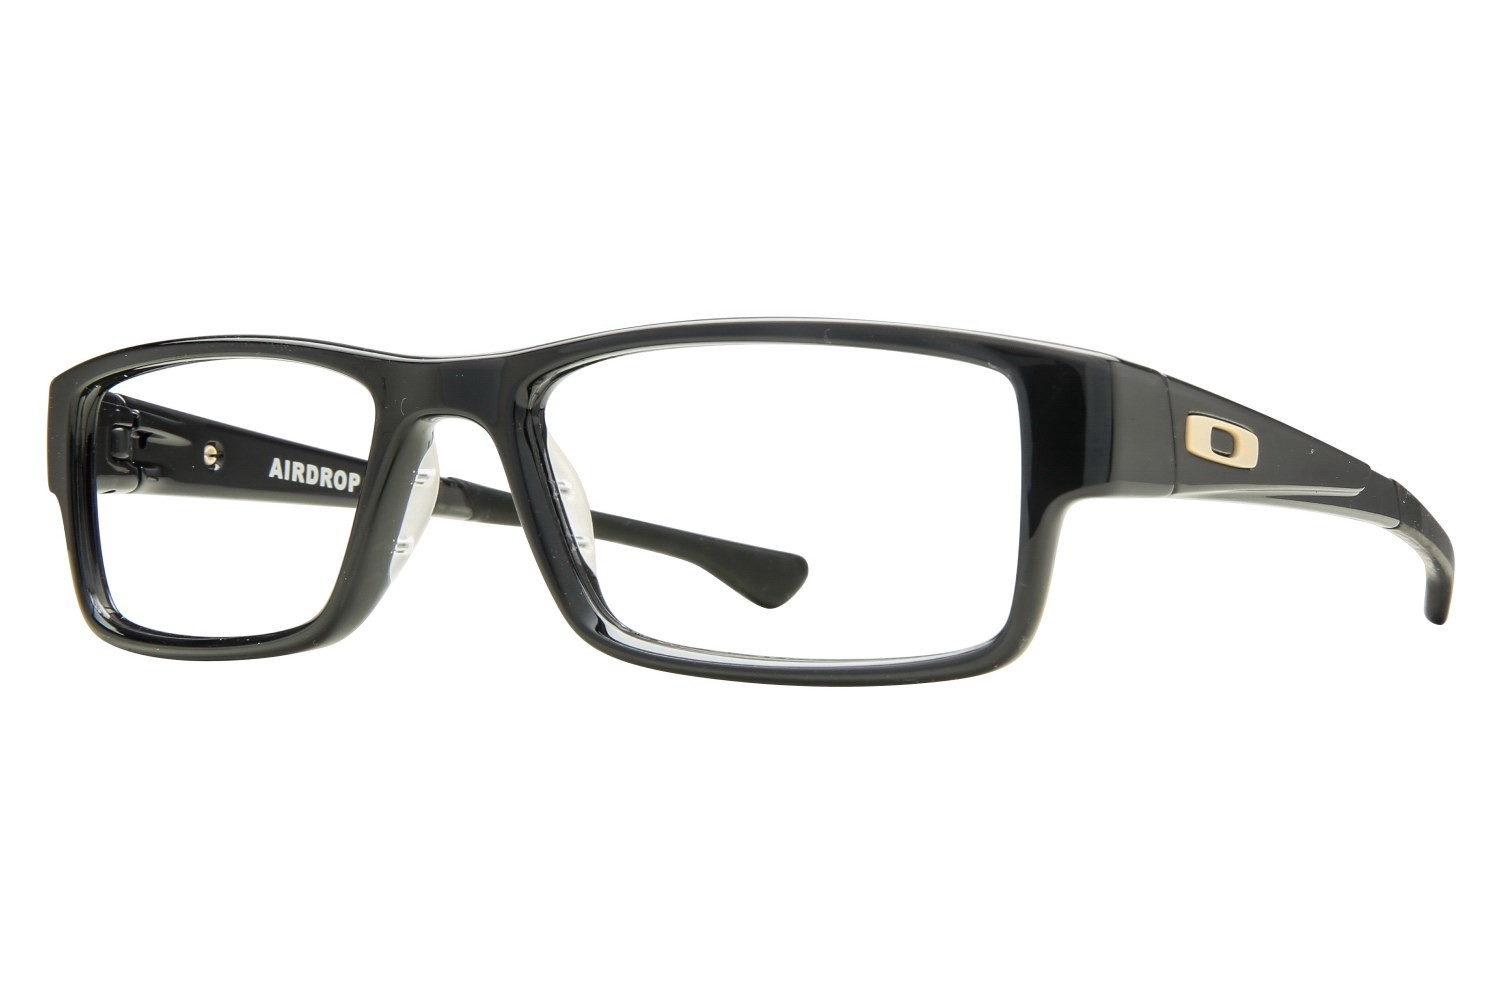 fea048c7e3 Review Oakley Airdrop (55) Prescription Eyeglasses – Review Contact ...